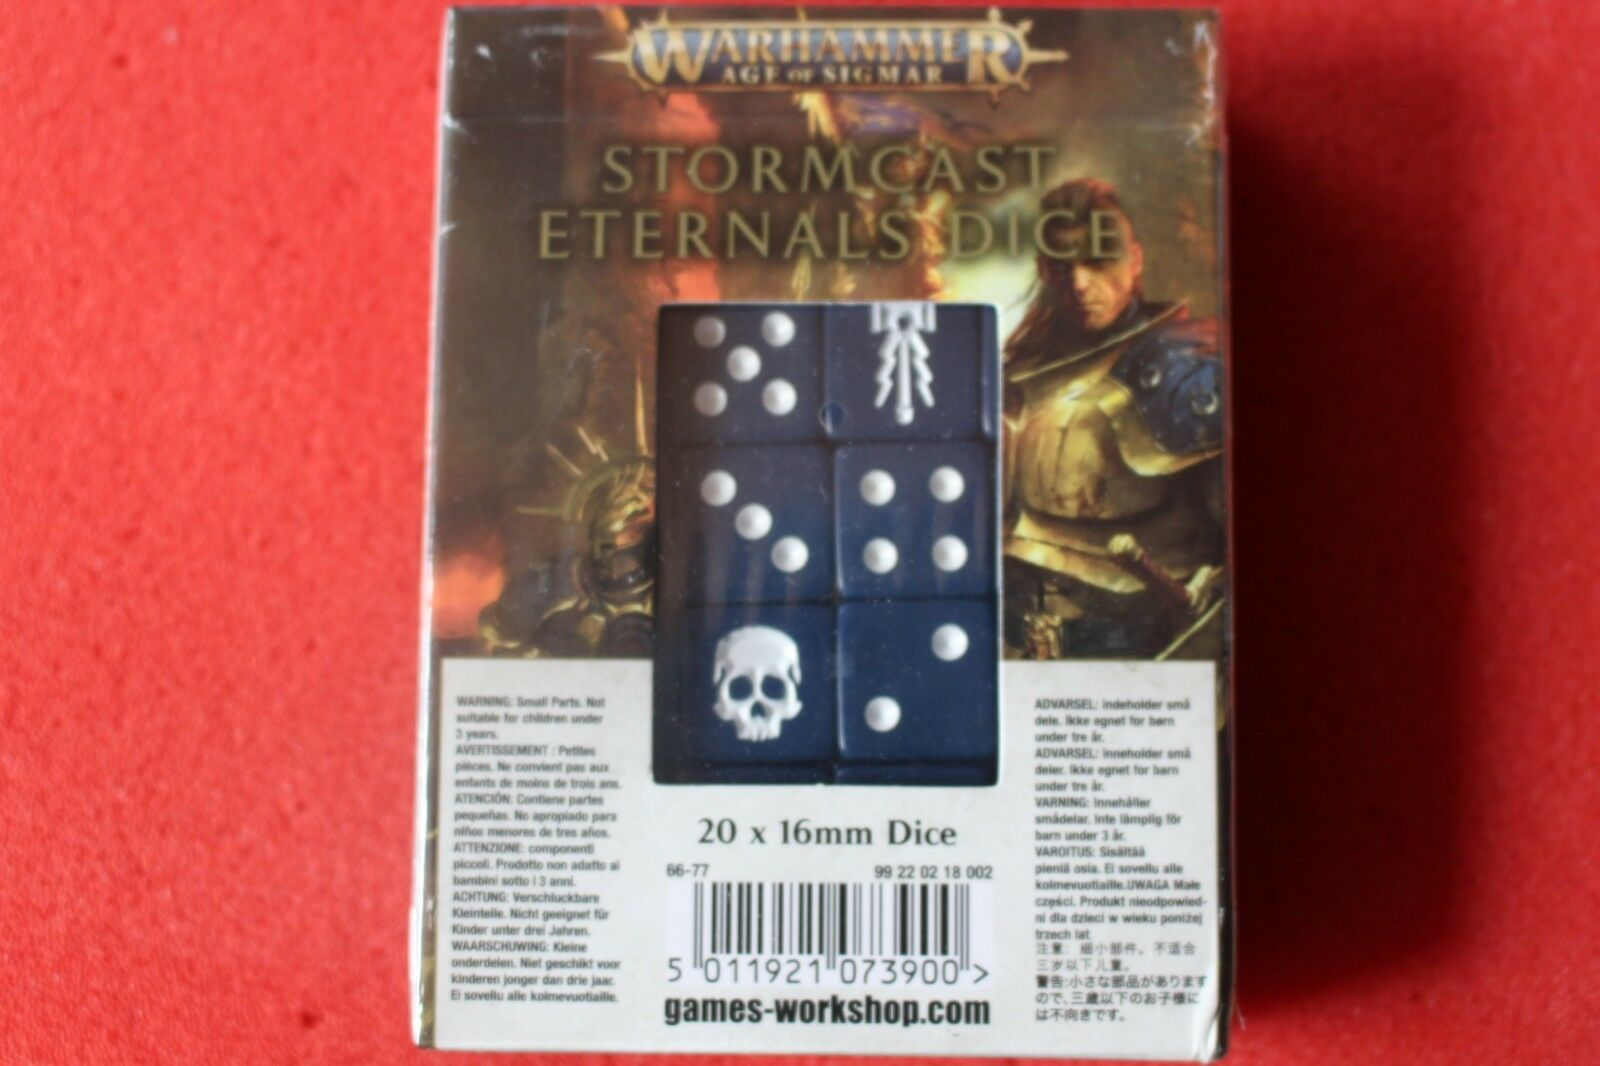 Games Workshop Warhammer Stormcast Eternals Dice BNIB New Age of Sigmar Sealed